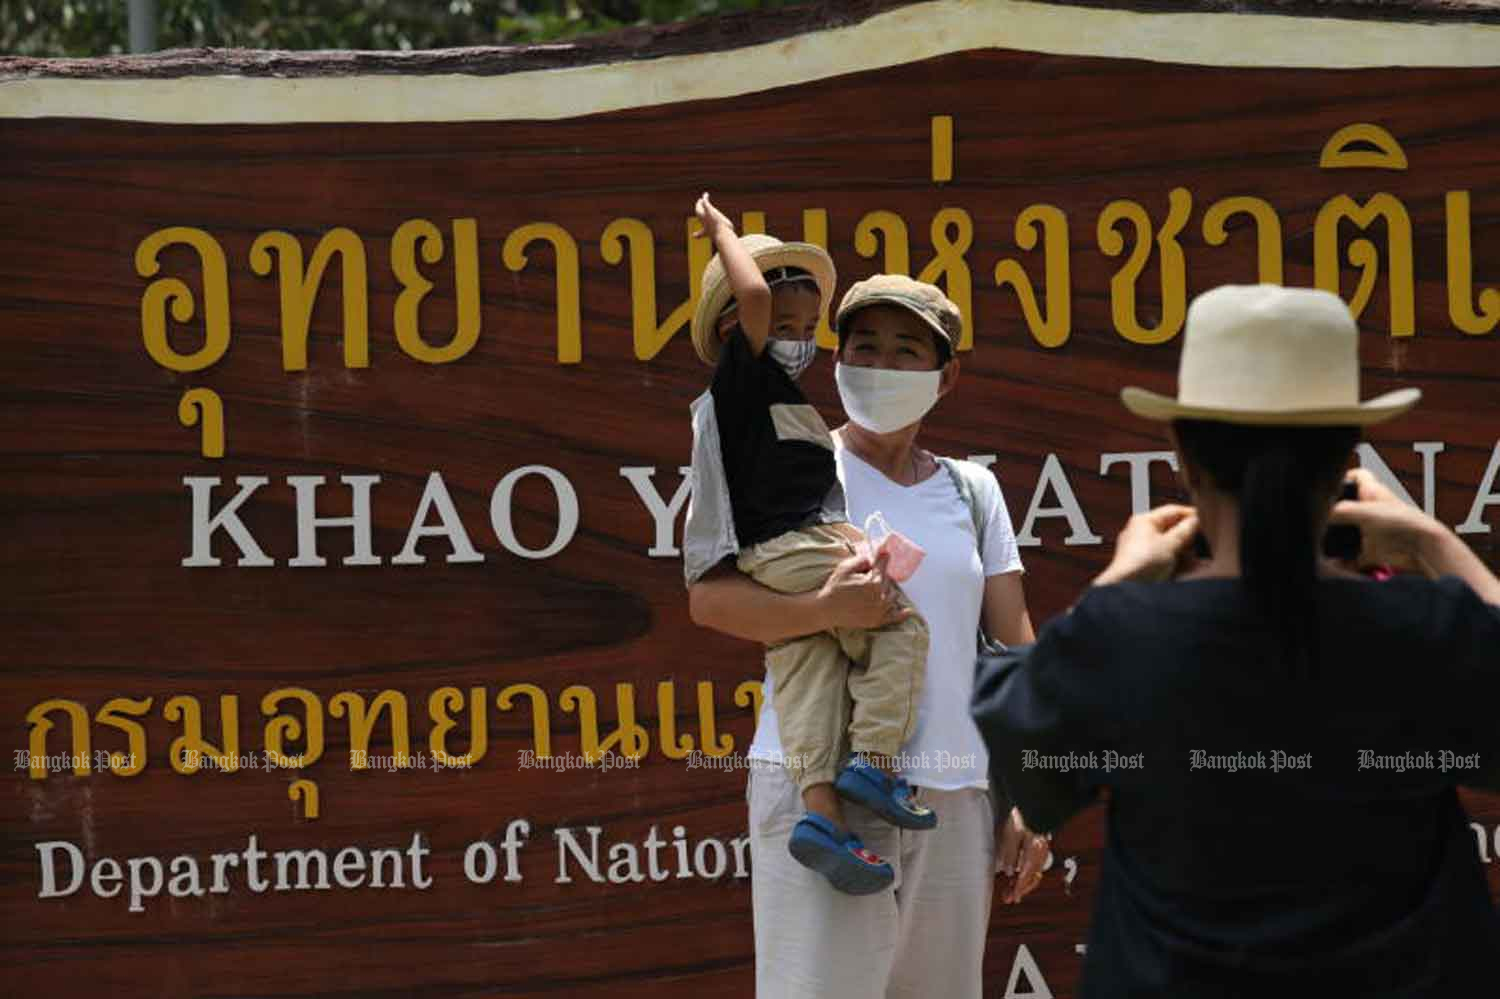 Visitors pose for photos at the entrance of Khao Yai National Park in Nakhon Ratchasima province on Thursday, when four new Covid-19 cases were detected. (Photo: Arnun Chonmahatrakool)